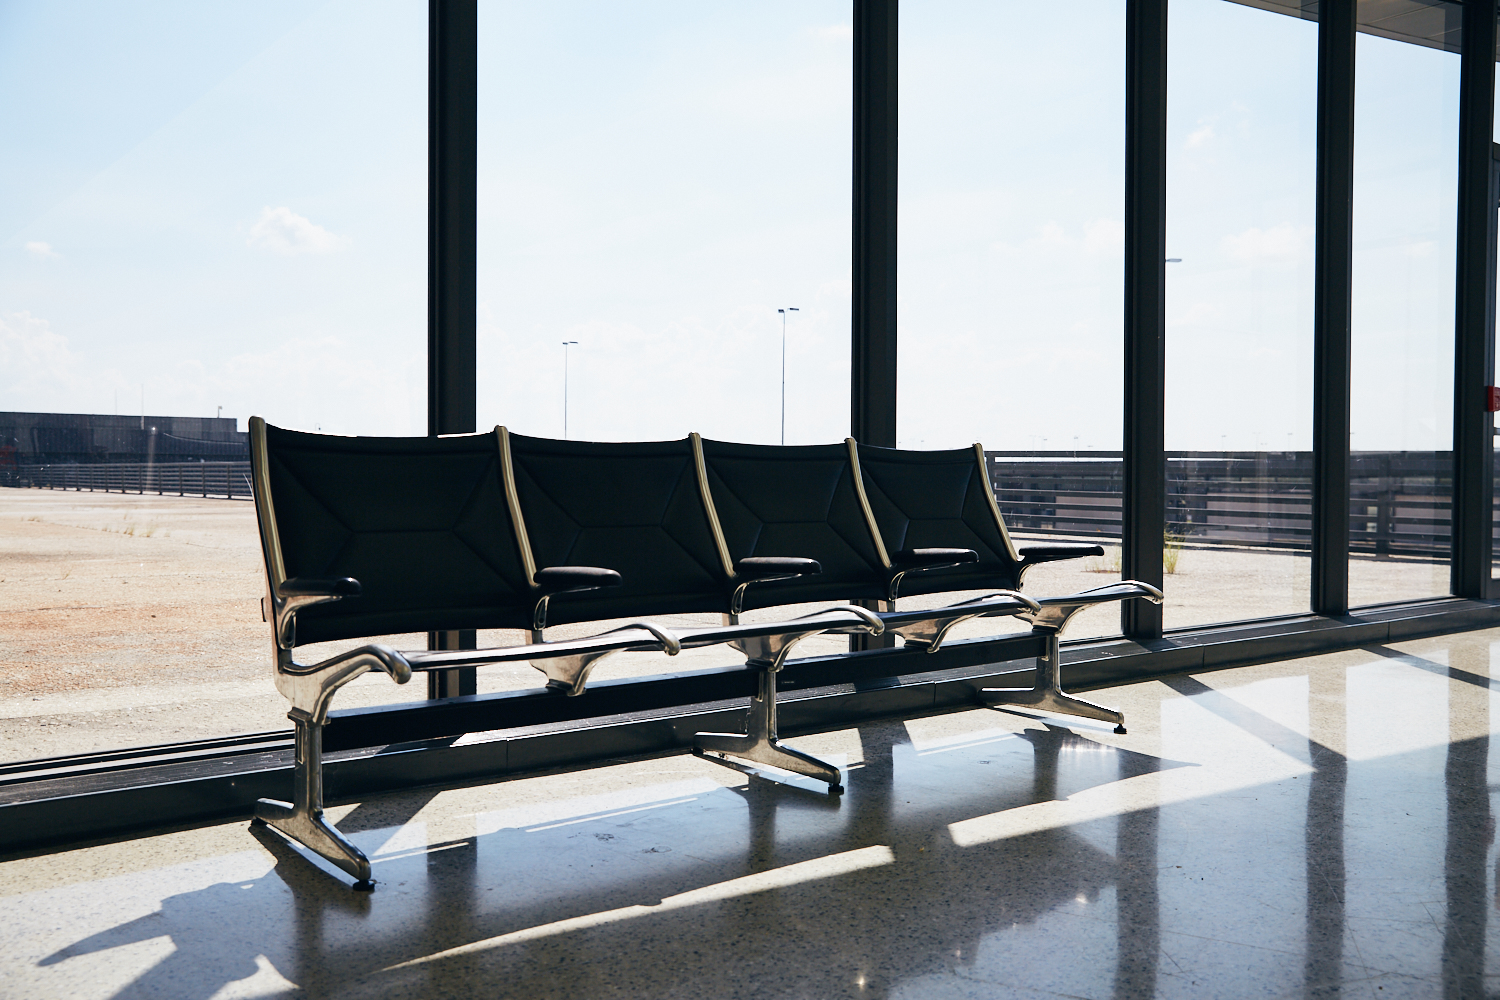 Quiet spot across from United Premier Ticketing on backside of terminal